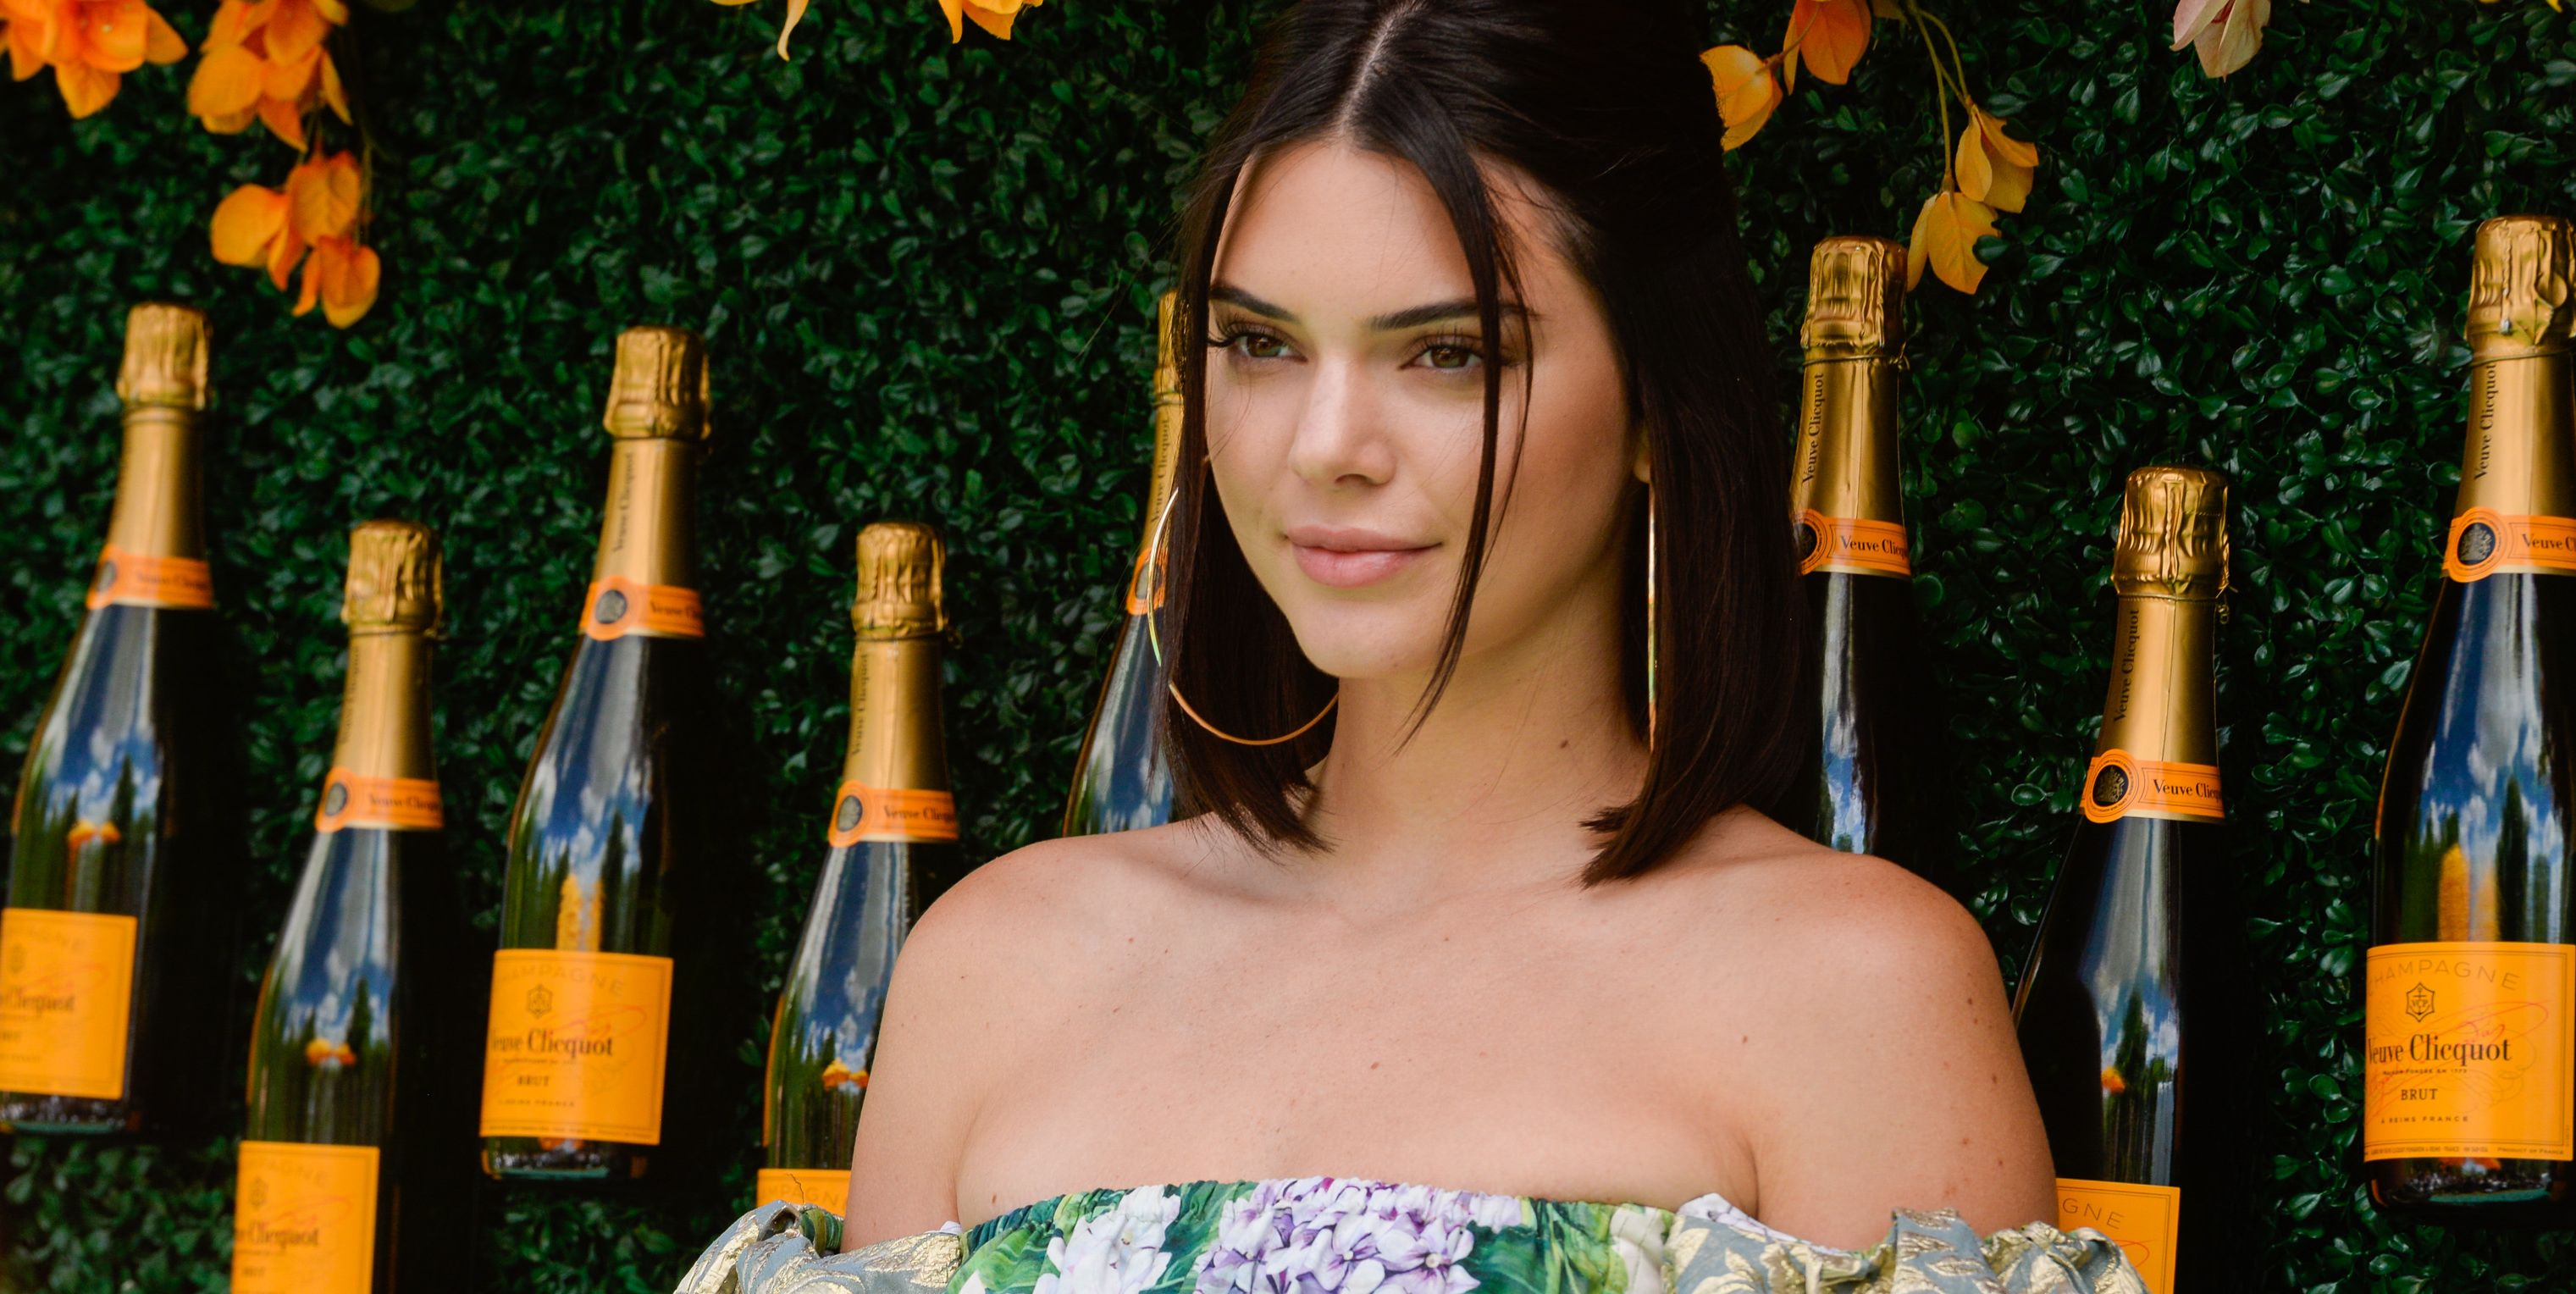 Kendall Jenner Channeled '60s Spirit and Style In Summery Instagram Snaps